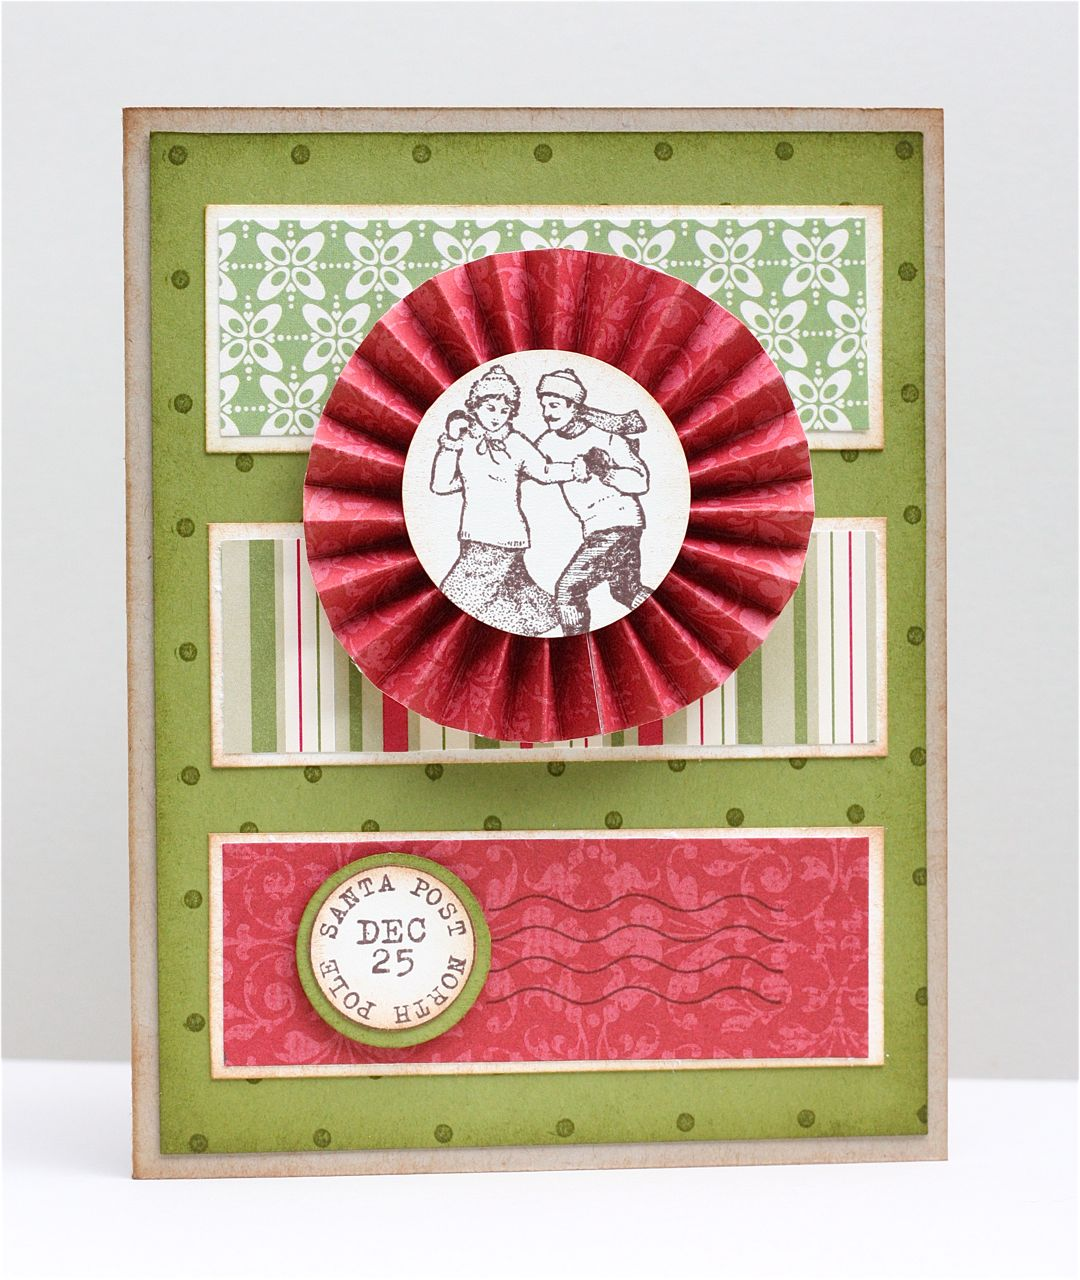 The apple crate accordion flower christmas card accordion flower christmas card have you noticed all of the do it yourself flower embellishments that are popping up in the paper crafting world solutioingenieria Choice Image